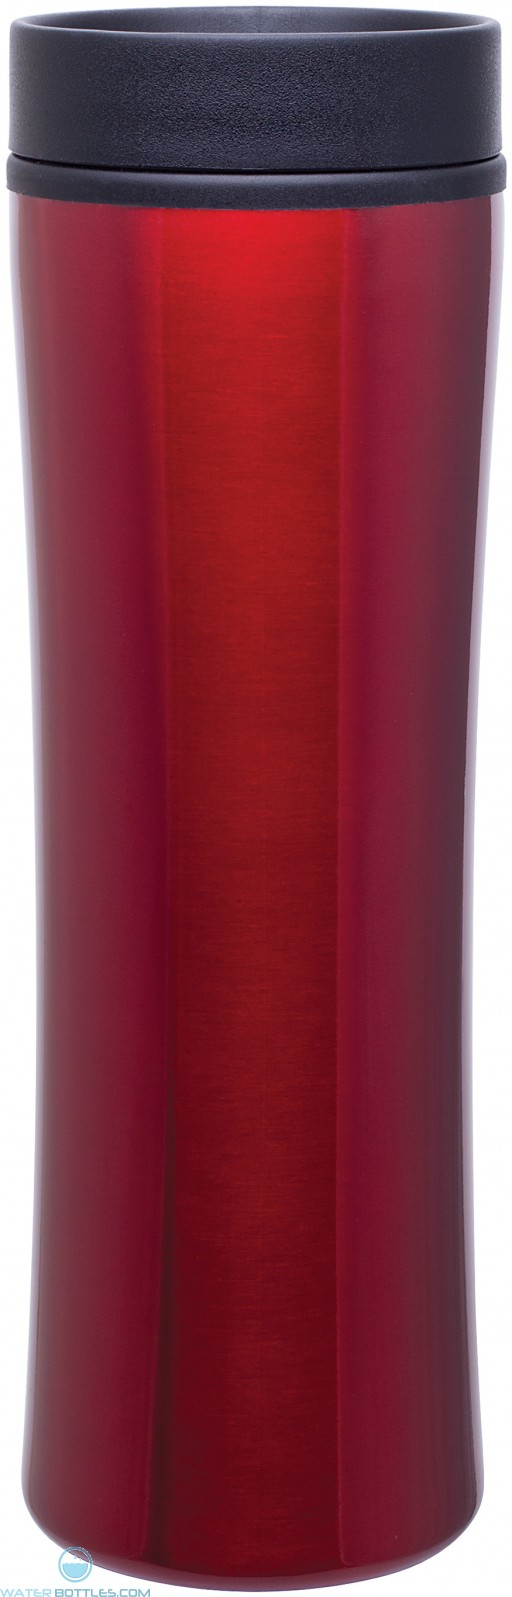 Foam Insulated Cyrus Tumblers | 16 oz - Red